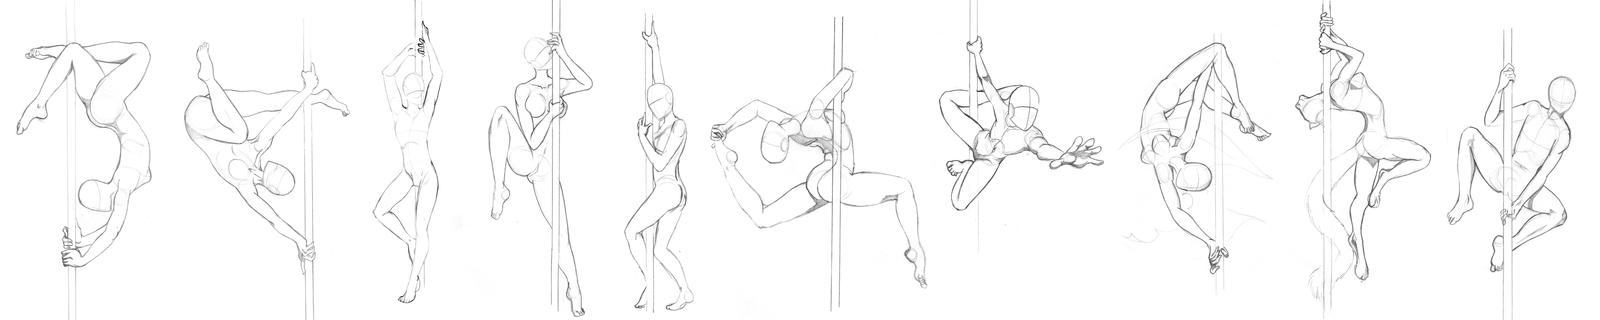 [Pose Study] 01 - Pole Dancing